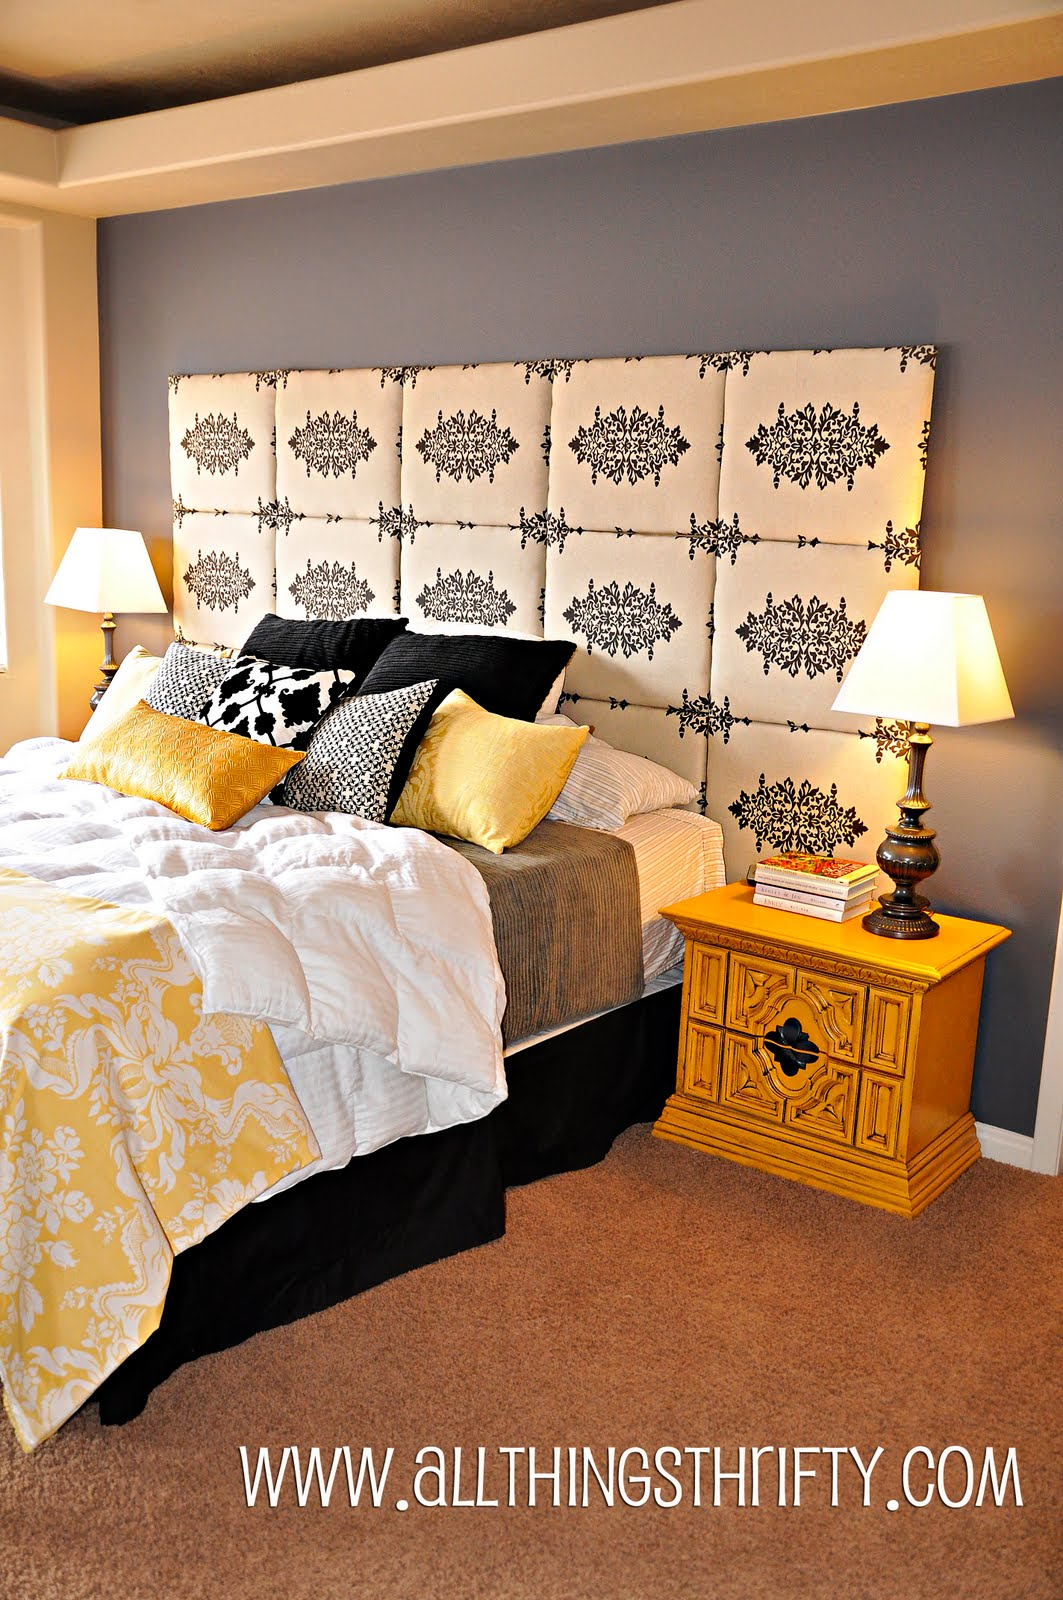 Make Your Own Headboard For Less Than 80 00